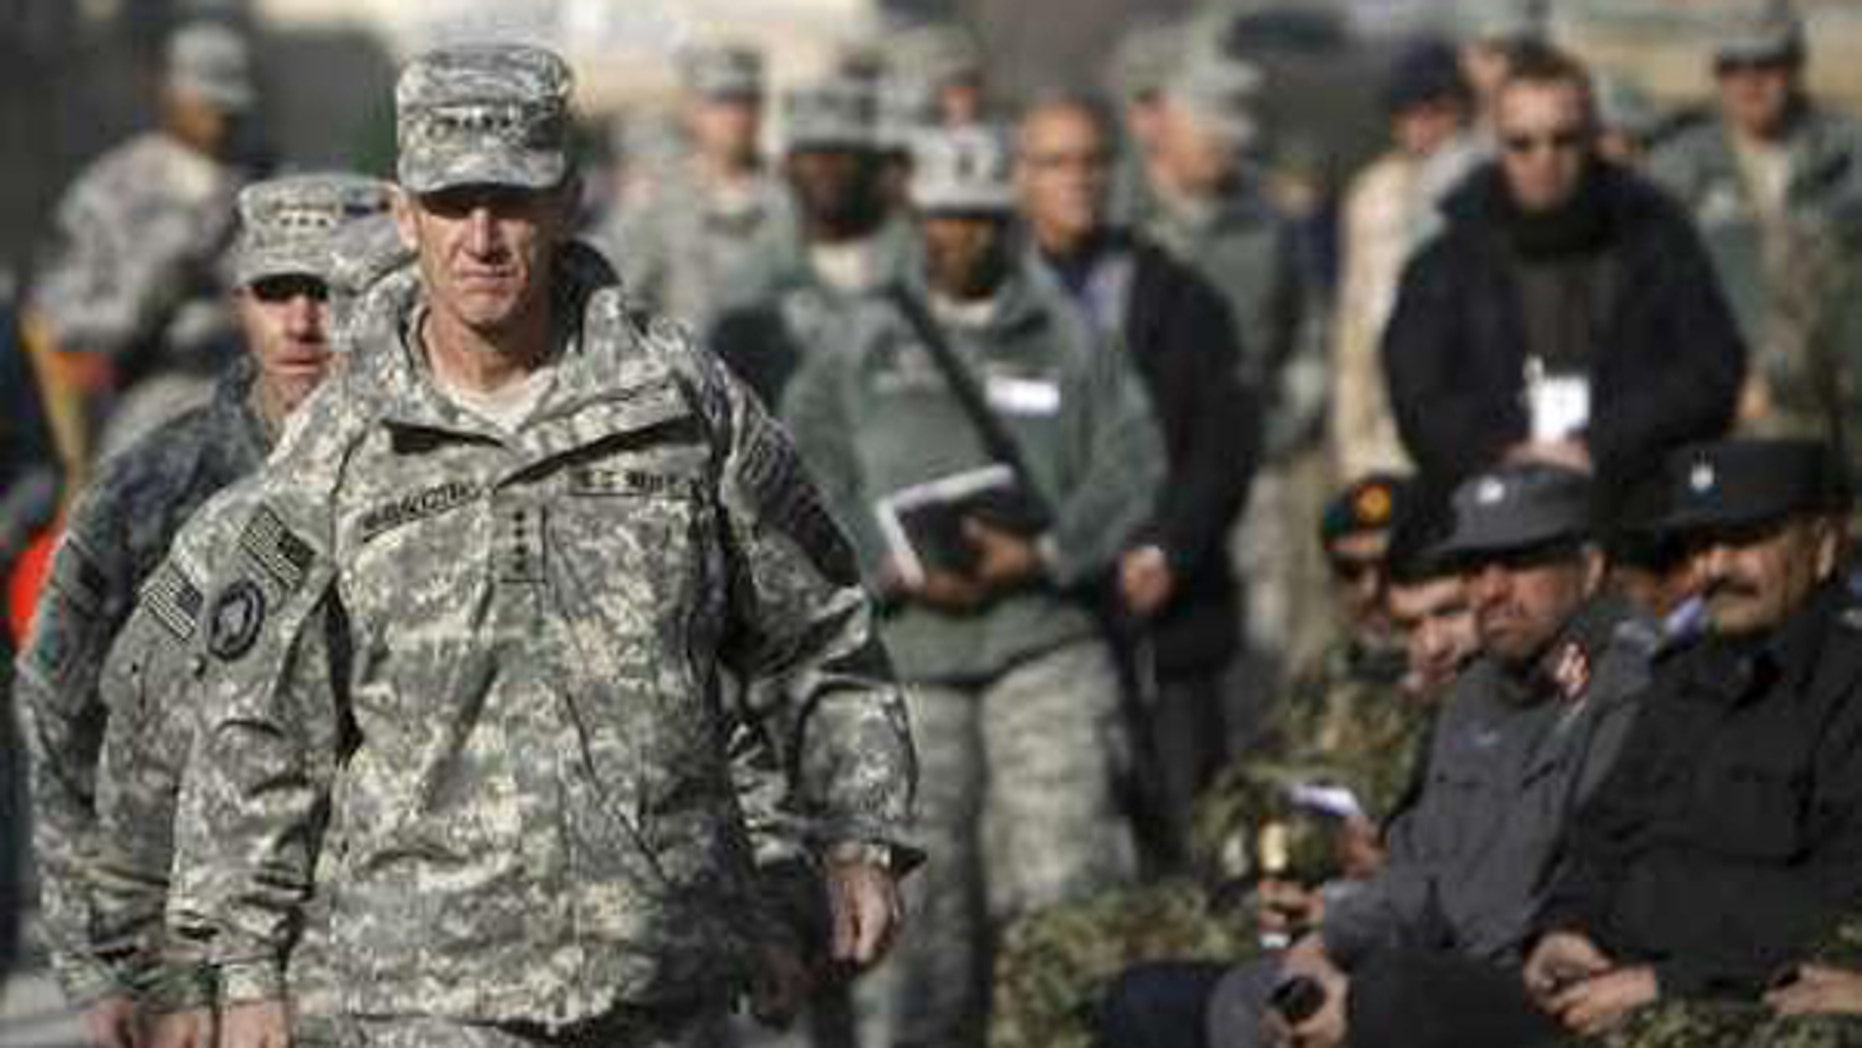 Saturday: Gen. Stanley McChrystal arrives at a ceremony in Kabul. (Reuters Photo)